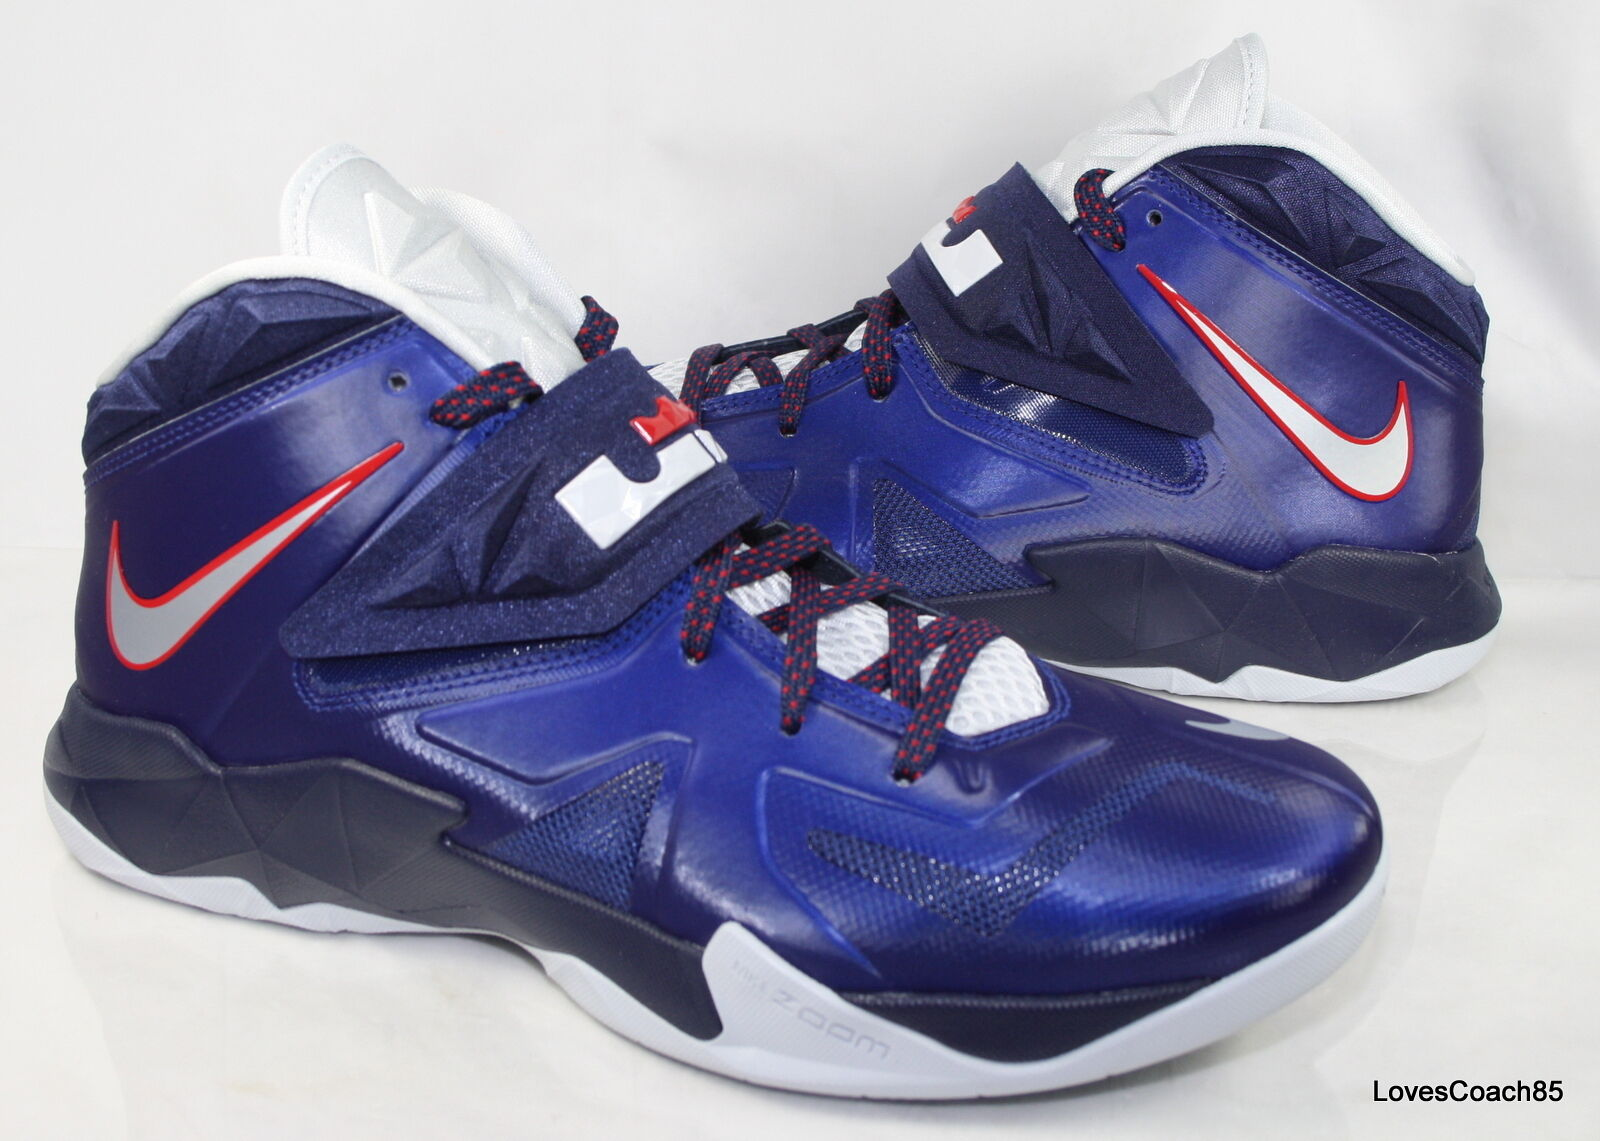 751b729f220 Nike Zoom Soldier VII Size 11 Deep Royal Blue Platinum-Navy-Red 599264-400  599264-400 599264-400 NIB 771a43